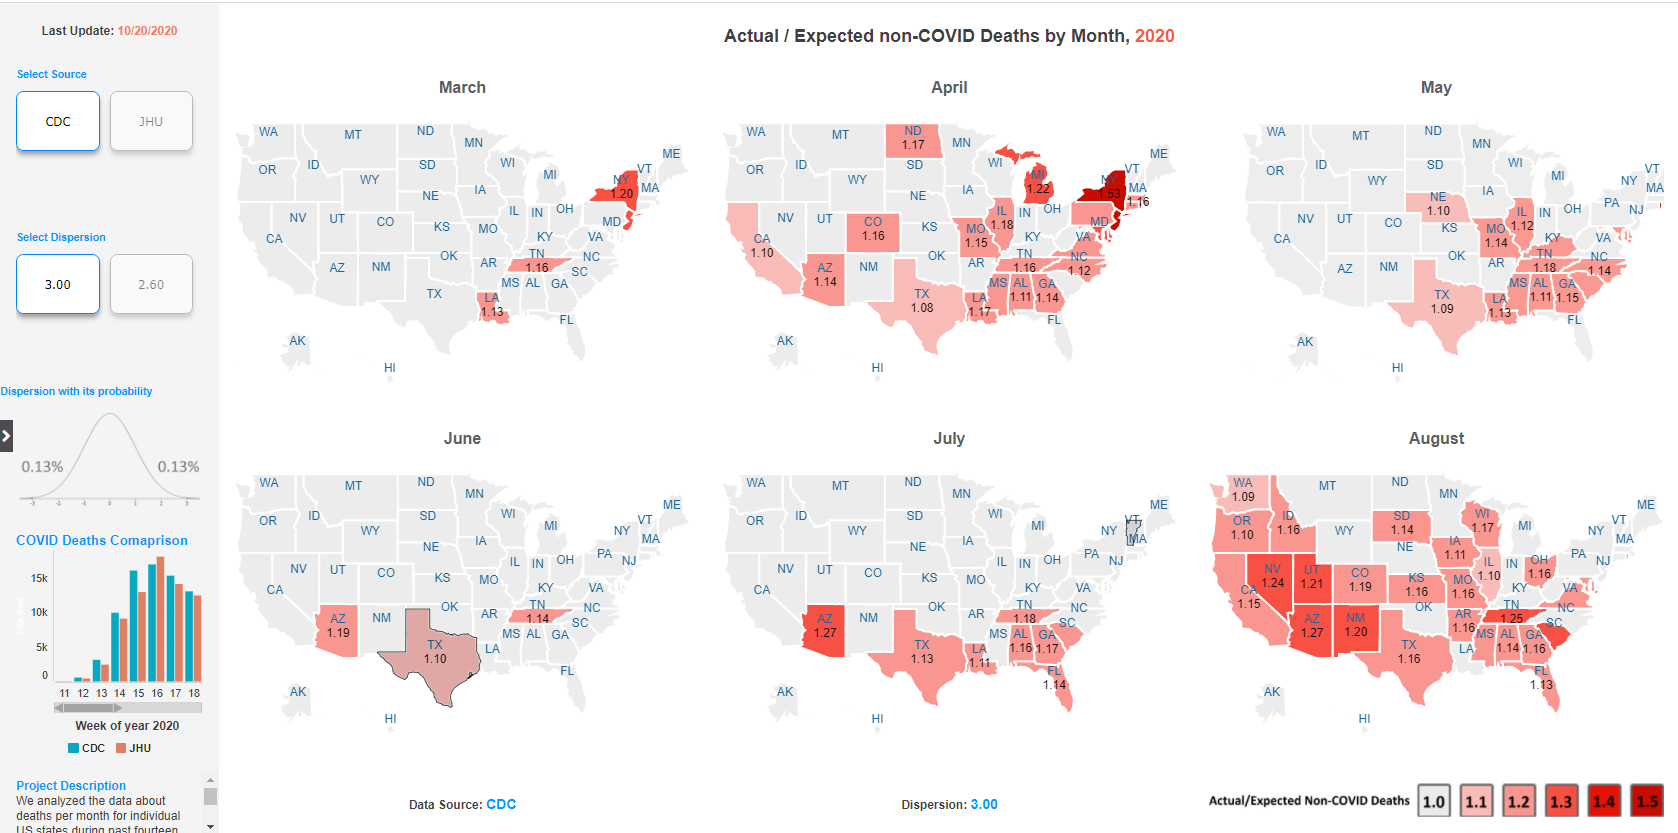 Evolution from March to August 2020 of actual/expected non-COVID deaths ratio.